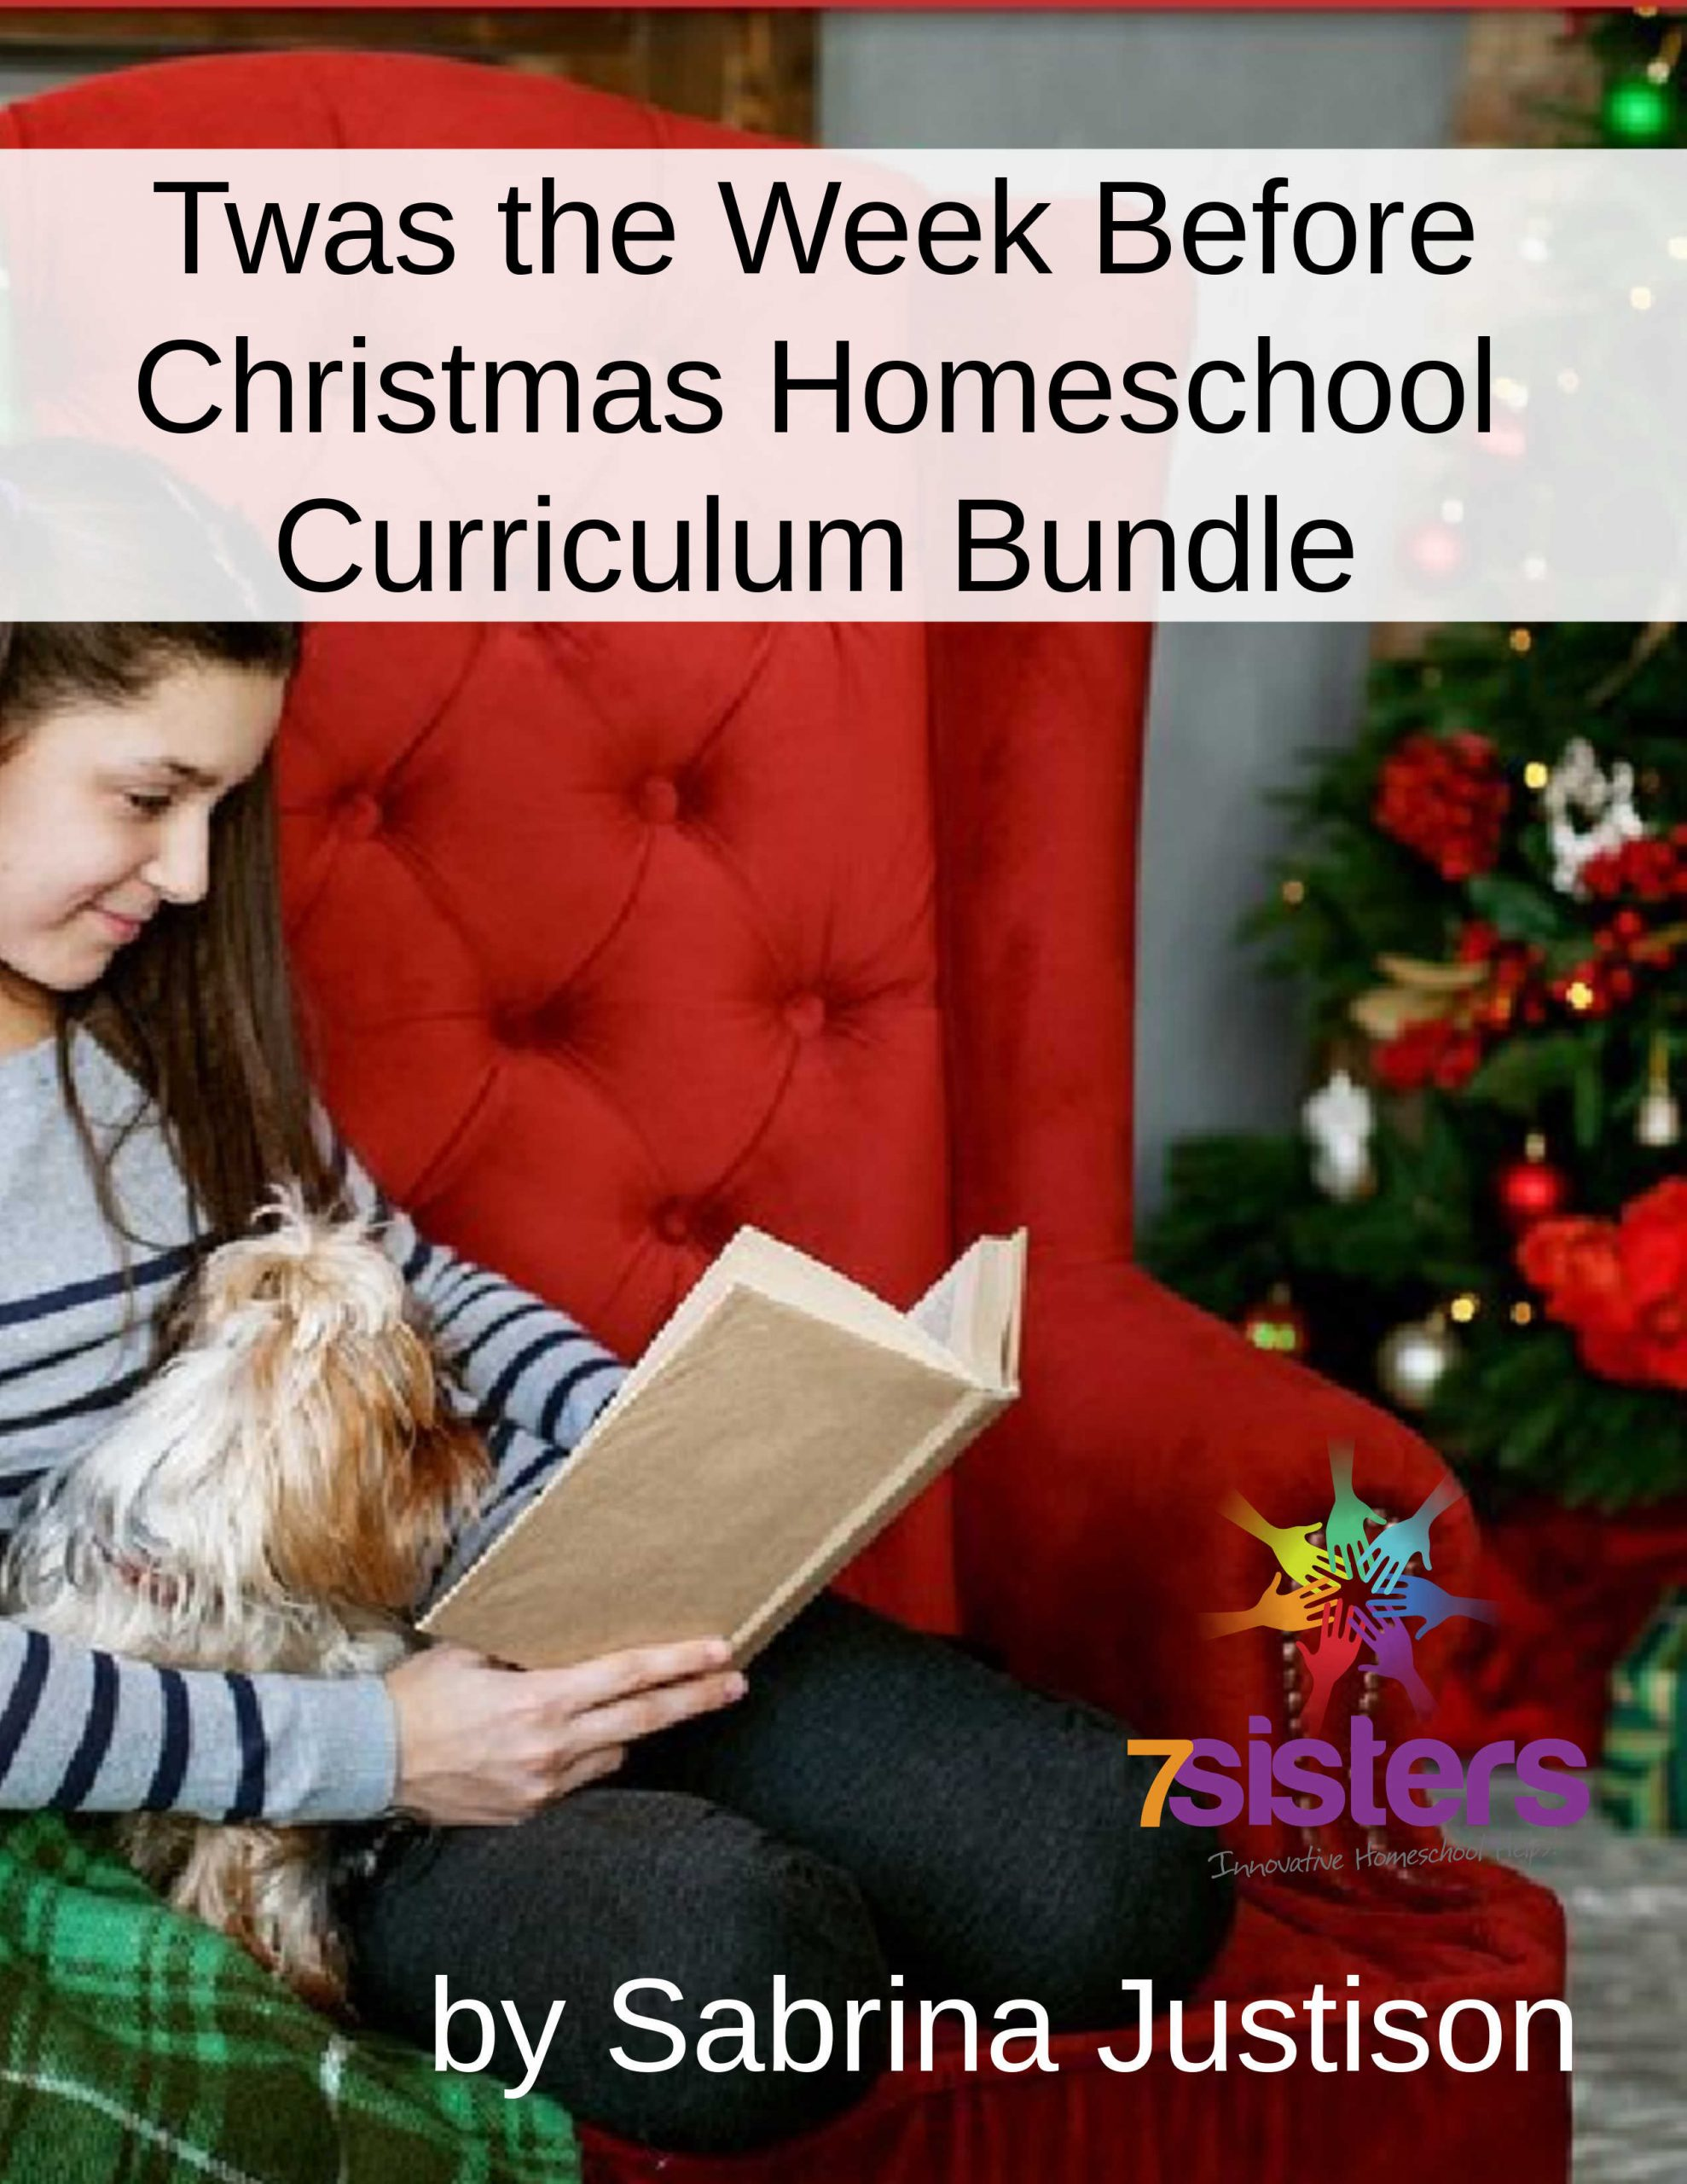 Twas the week before Christmas homeschool curriculum bundle